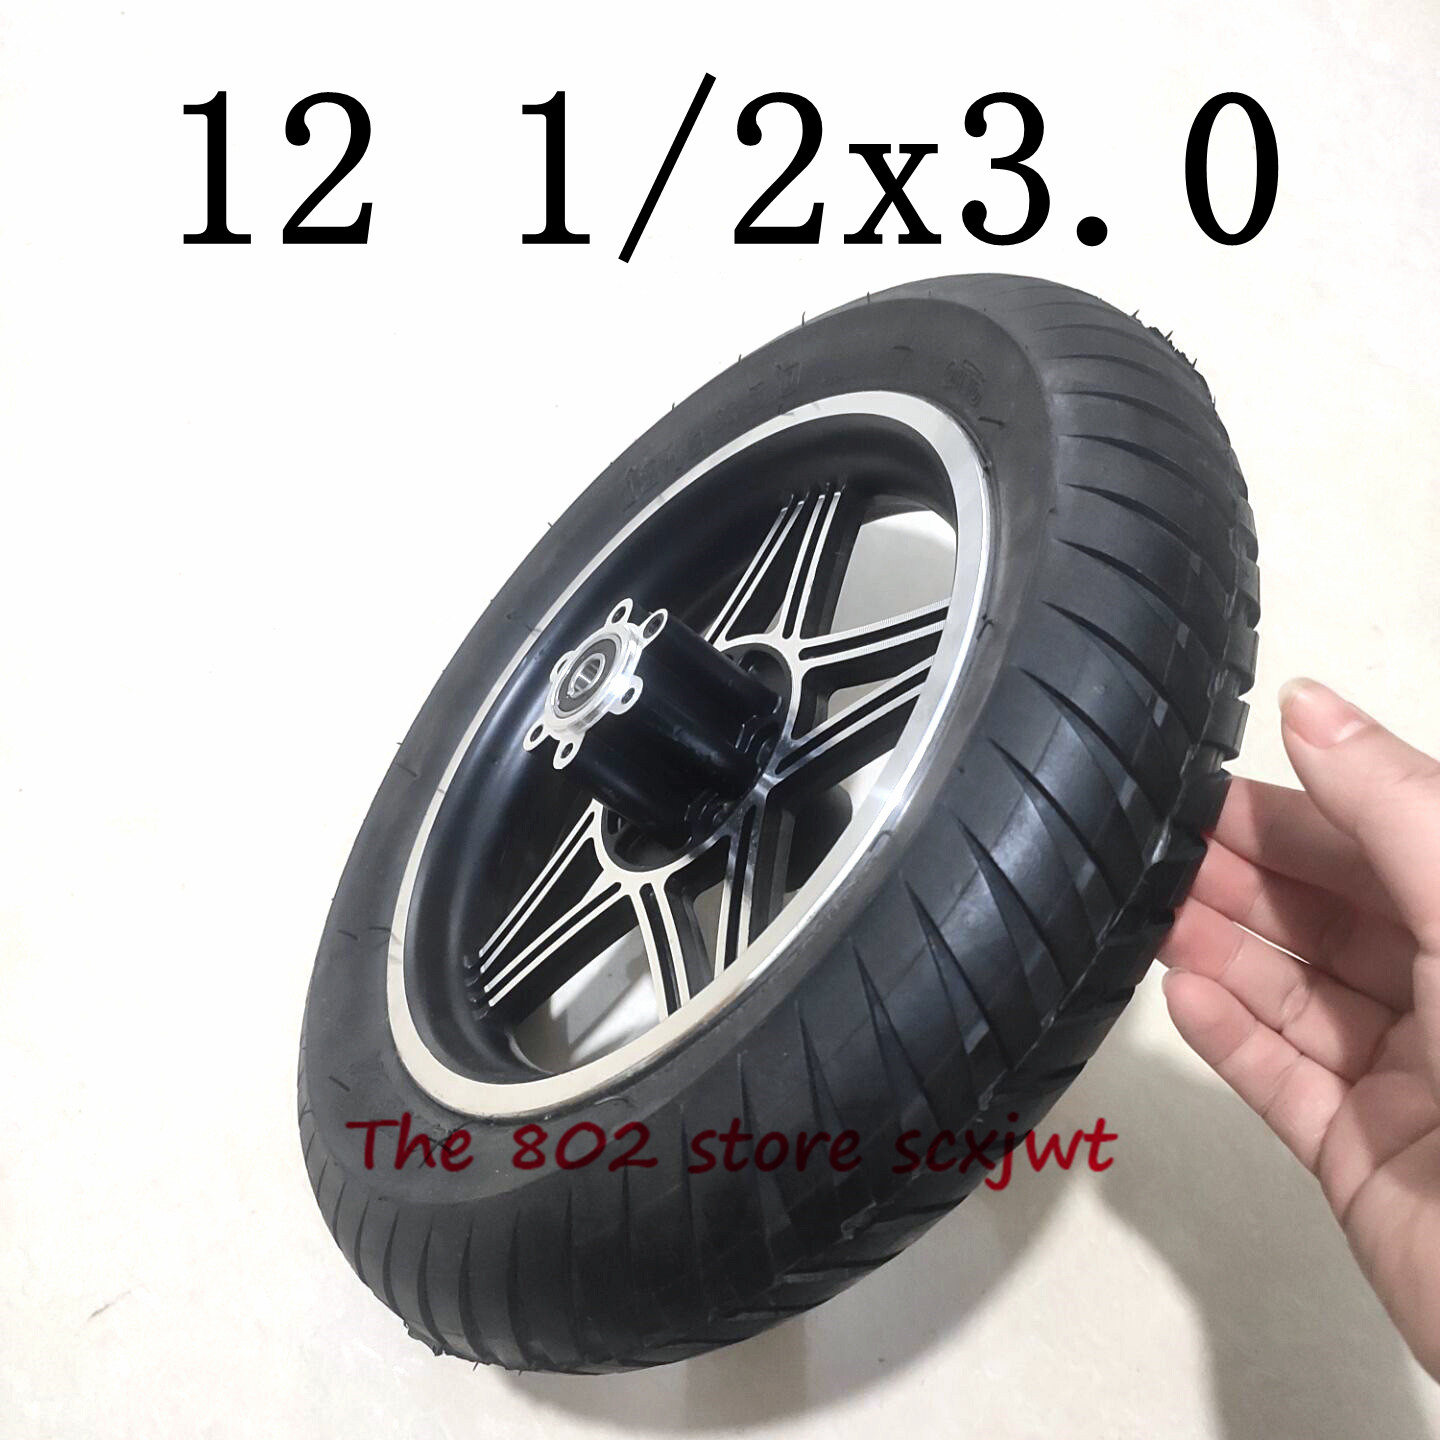 Lightning Delivery 12 Inch 12 1/2 X 3.0 Wheel Tyre with Disc Brake Hole Hub for Electric Scooters and E-Bike Folding Bicycle